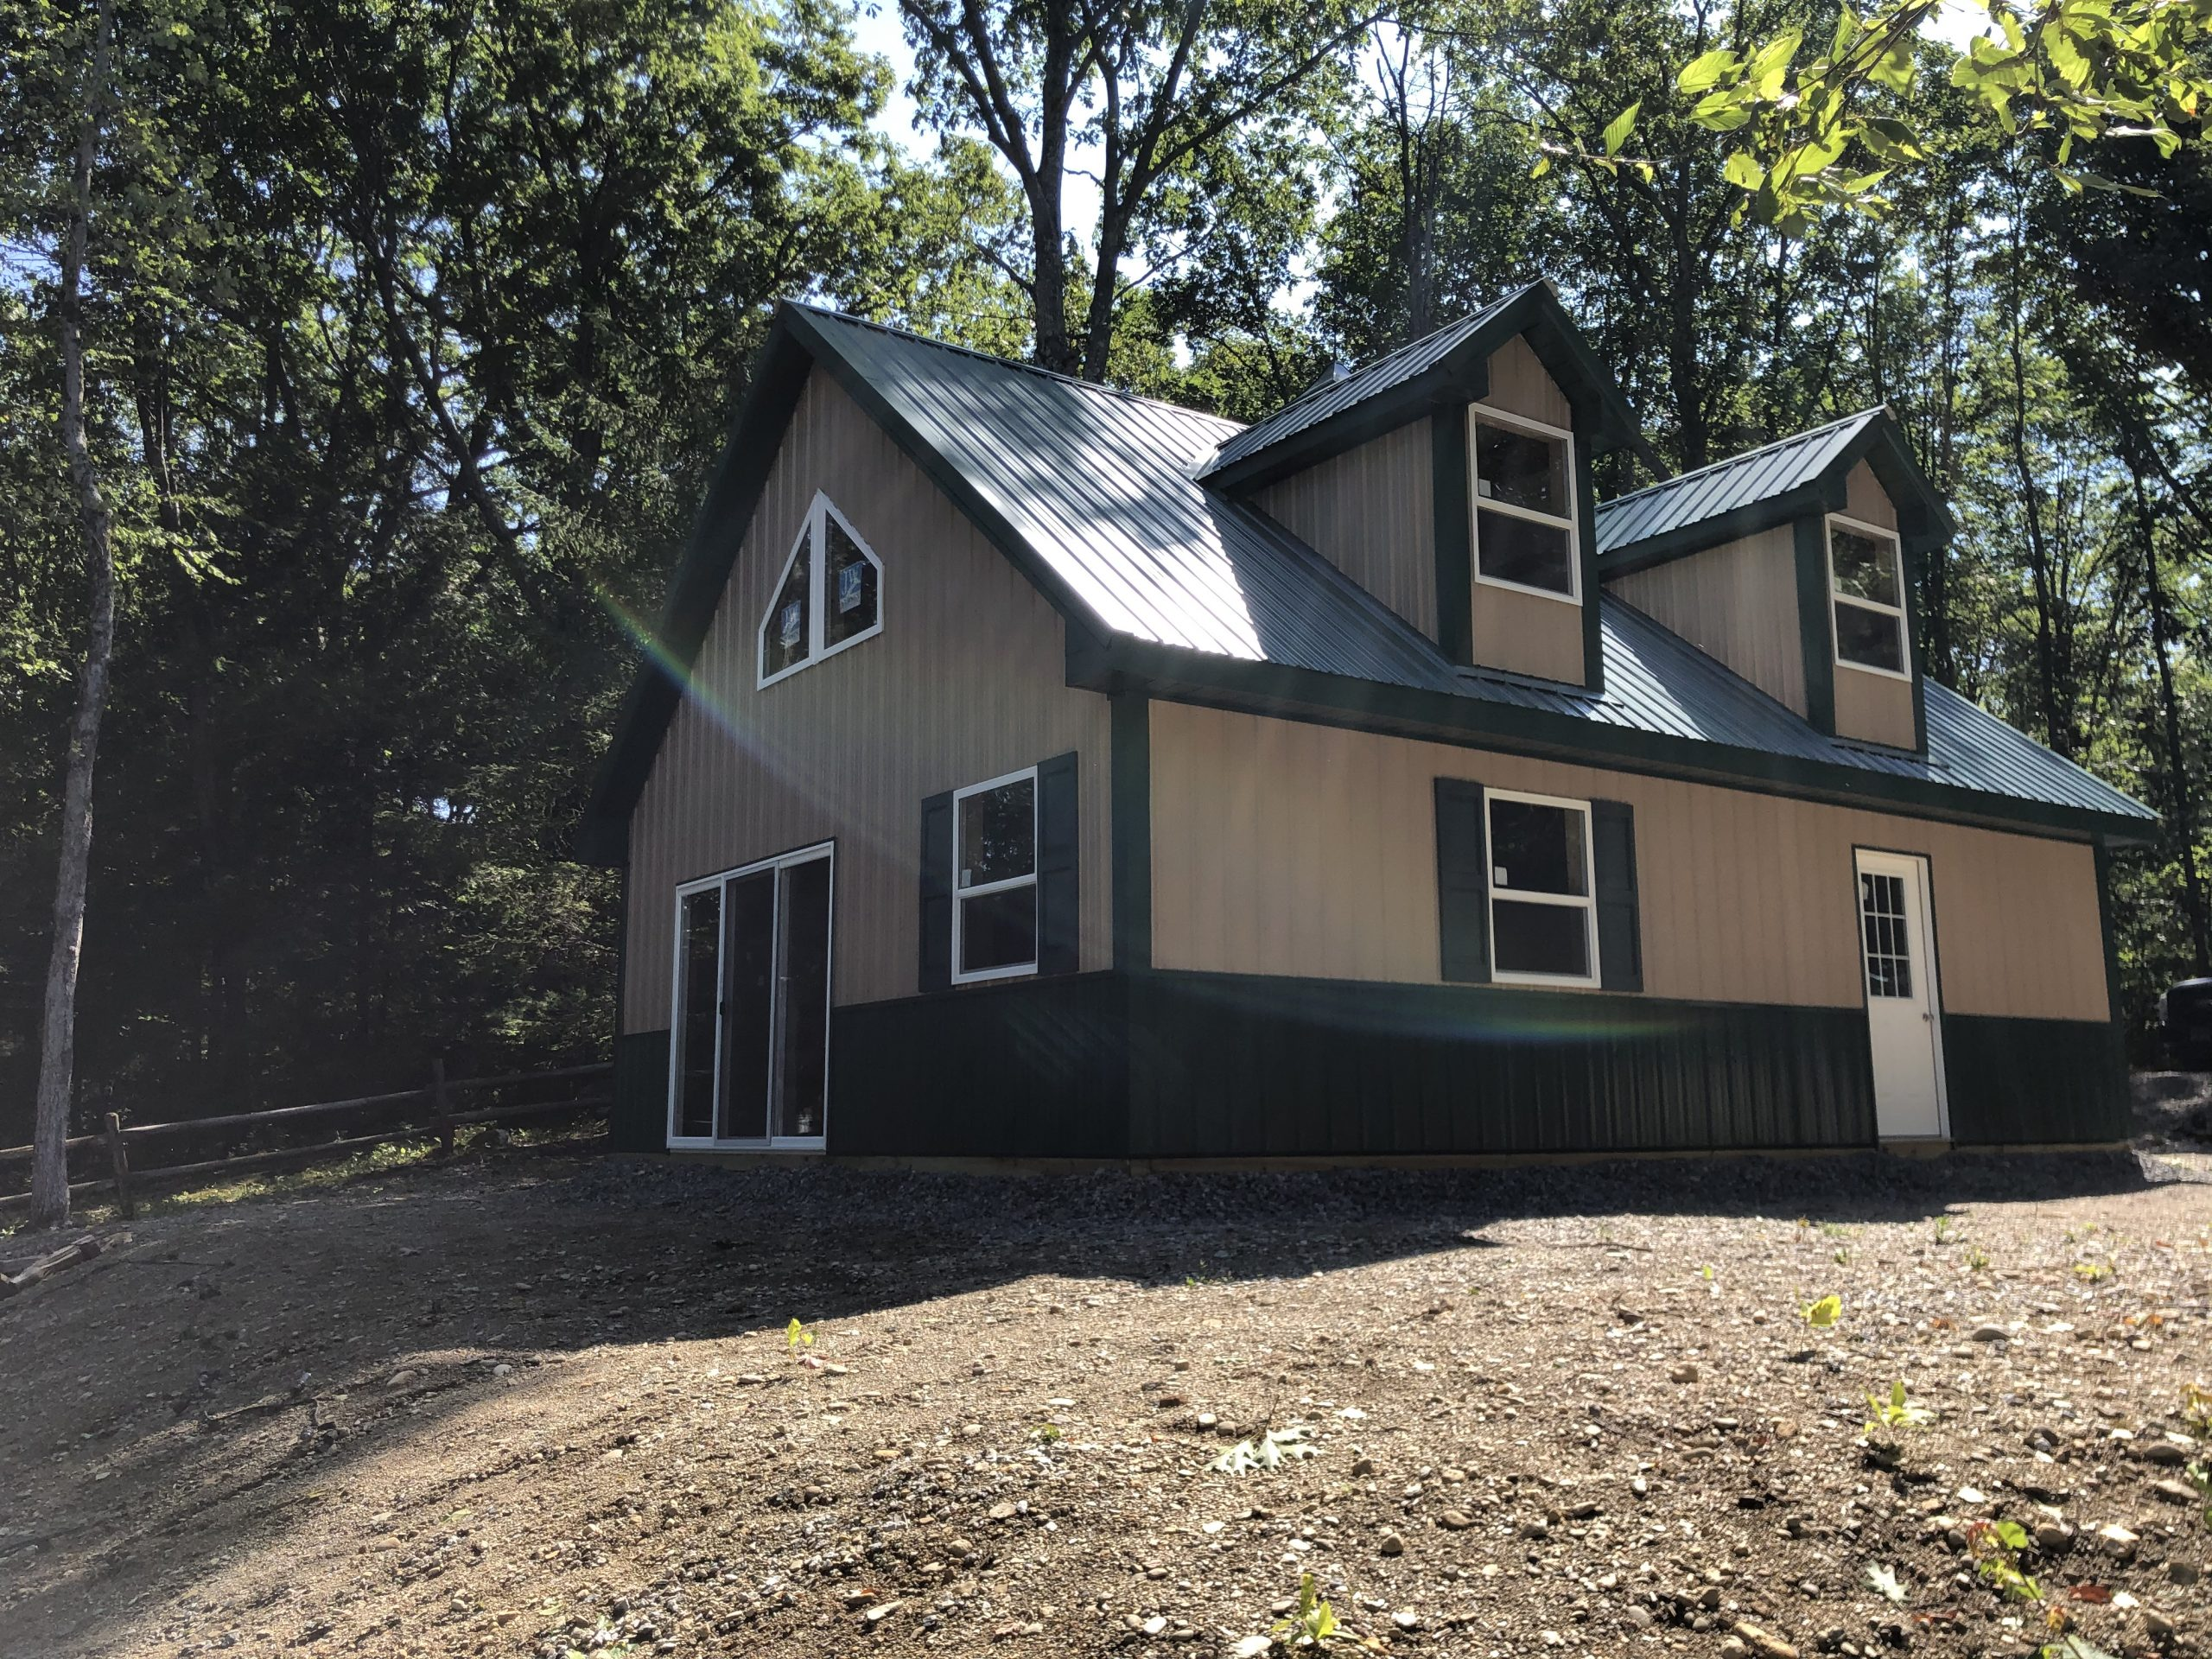 brand new pole barn home in new jersey